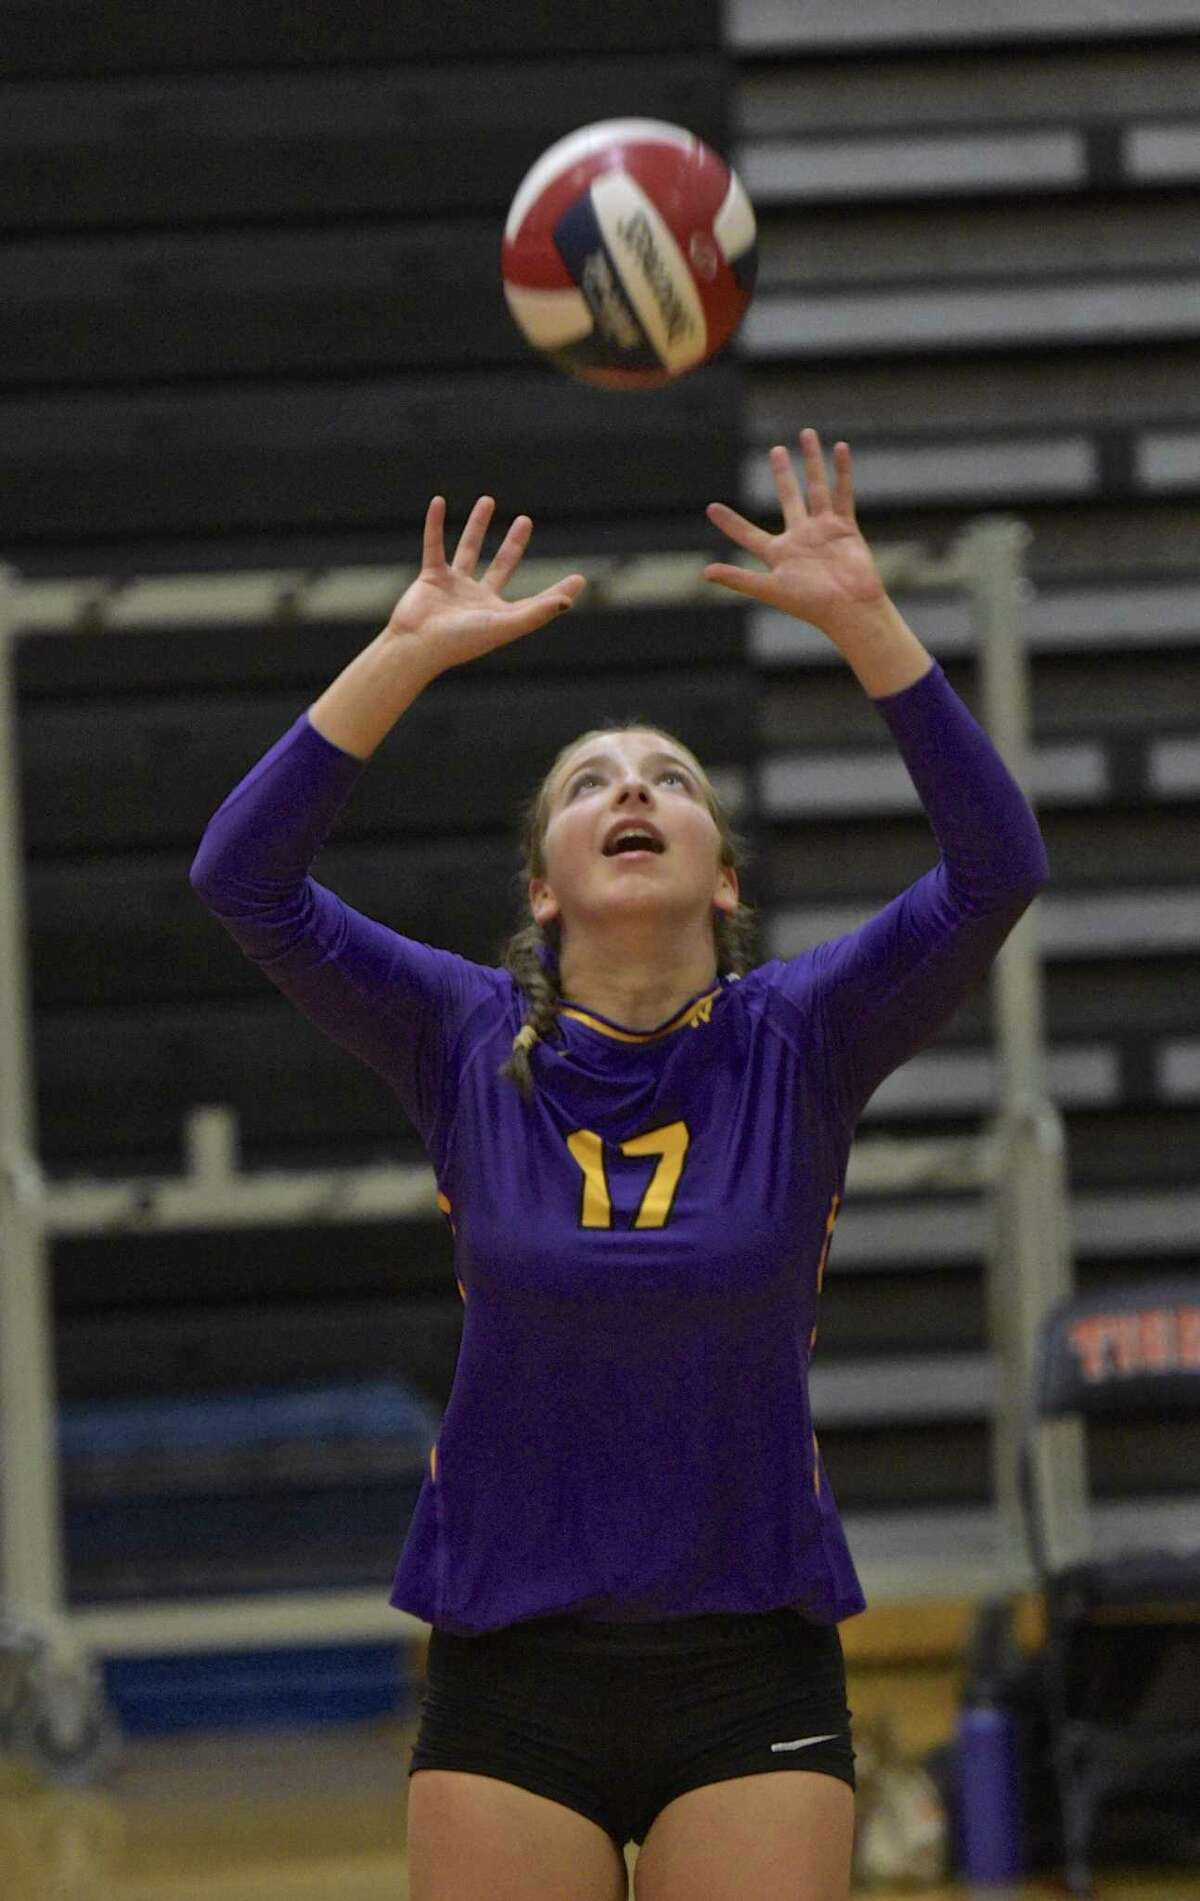 Westhill's Sophia Thagouras sets the ball in the girls volleyball game between Westhill and Ridgefield high schools on Oct. 25, 2017, at Ridgefield High School, in Ridgefield, Conn.